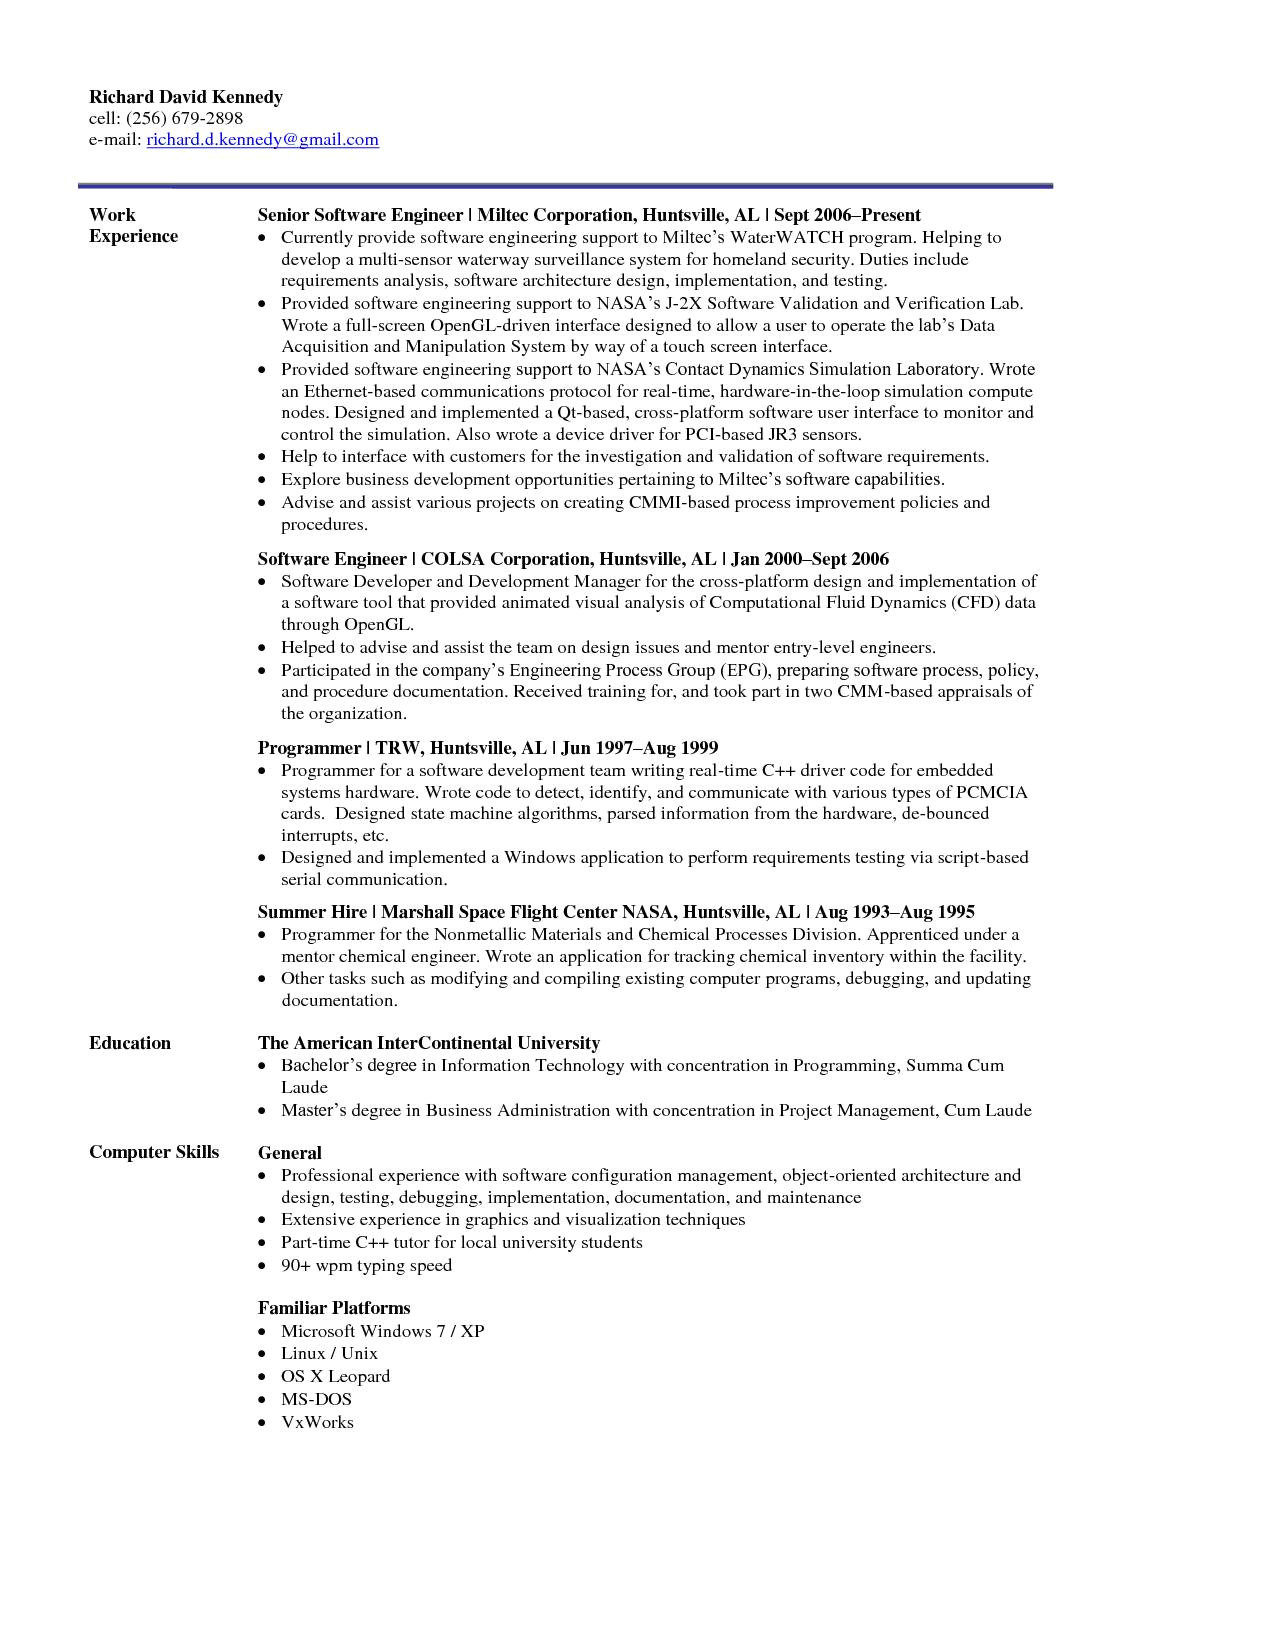 6 months experience resume sample software engineer